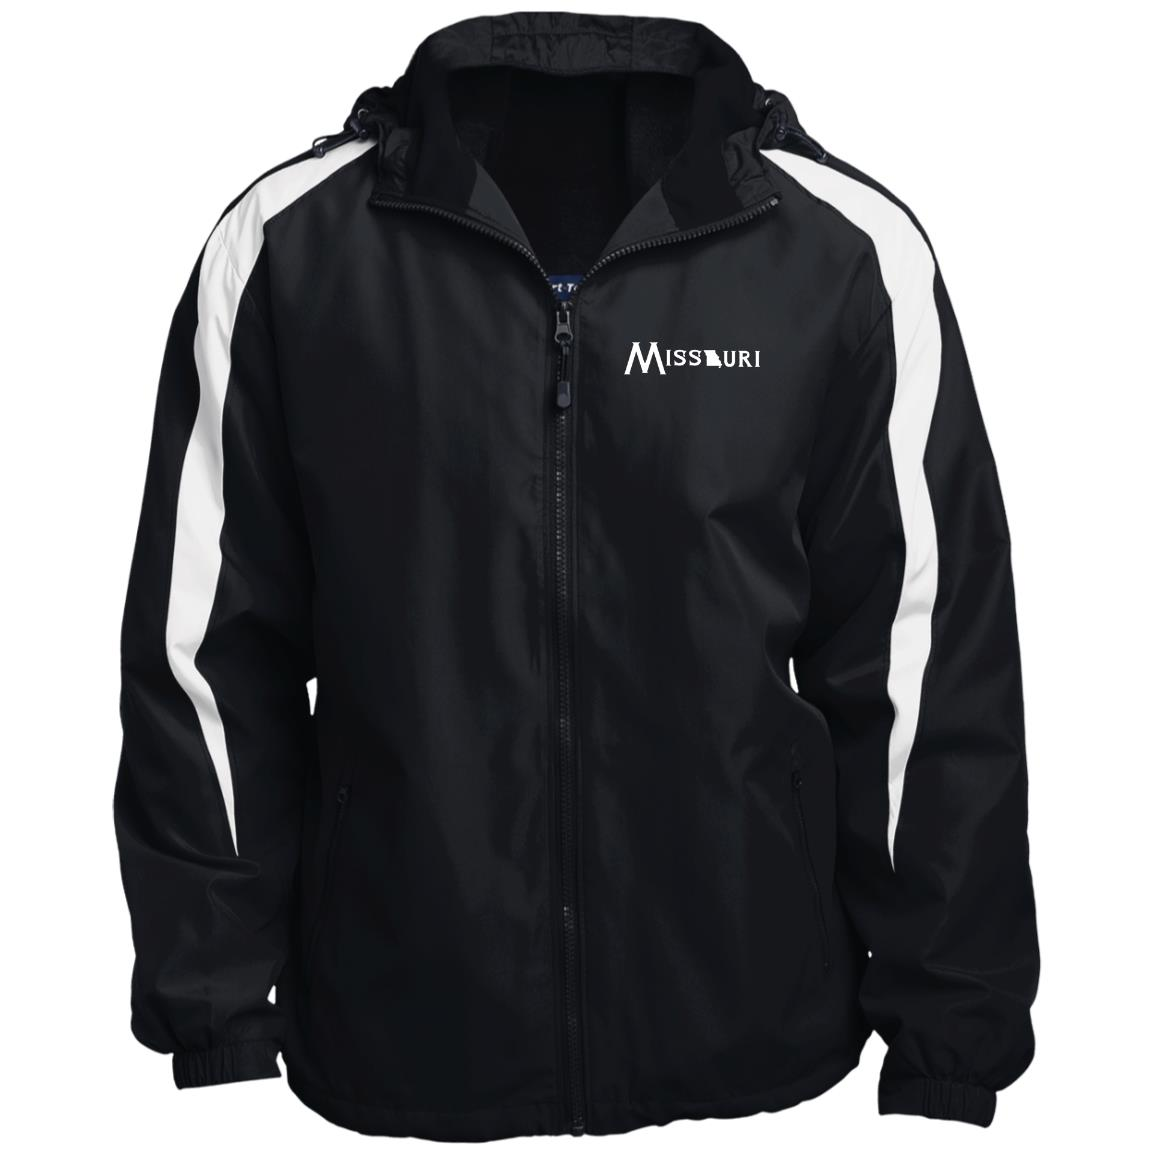 Missouri with State Image Fleece Lined Colorblocked Hooded Jacket